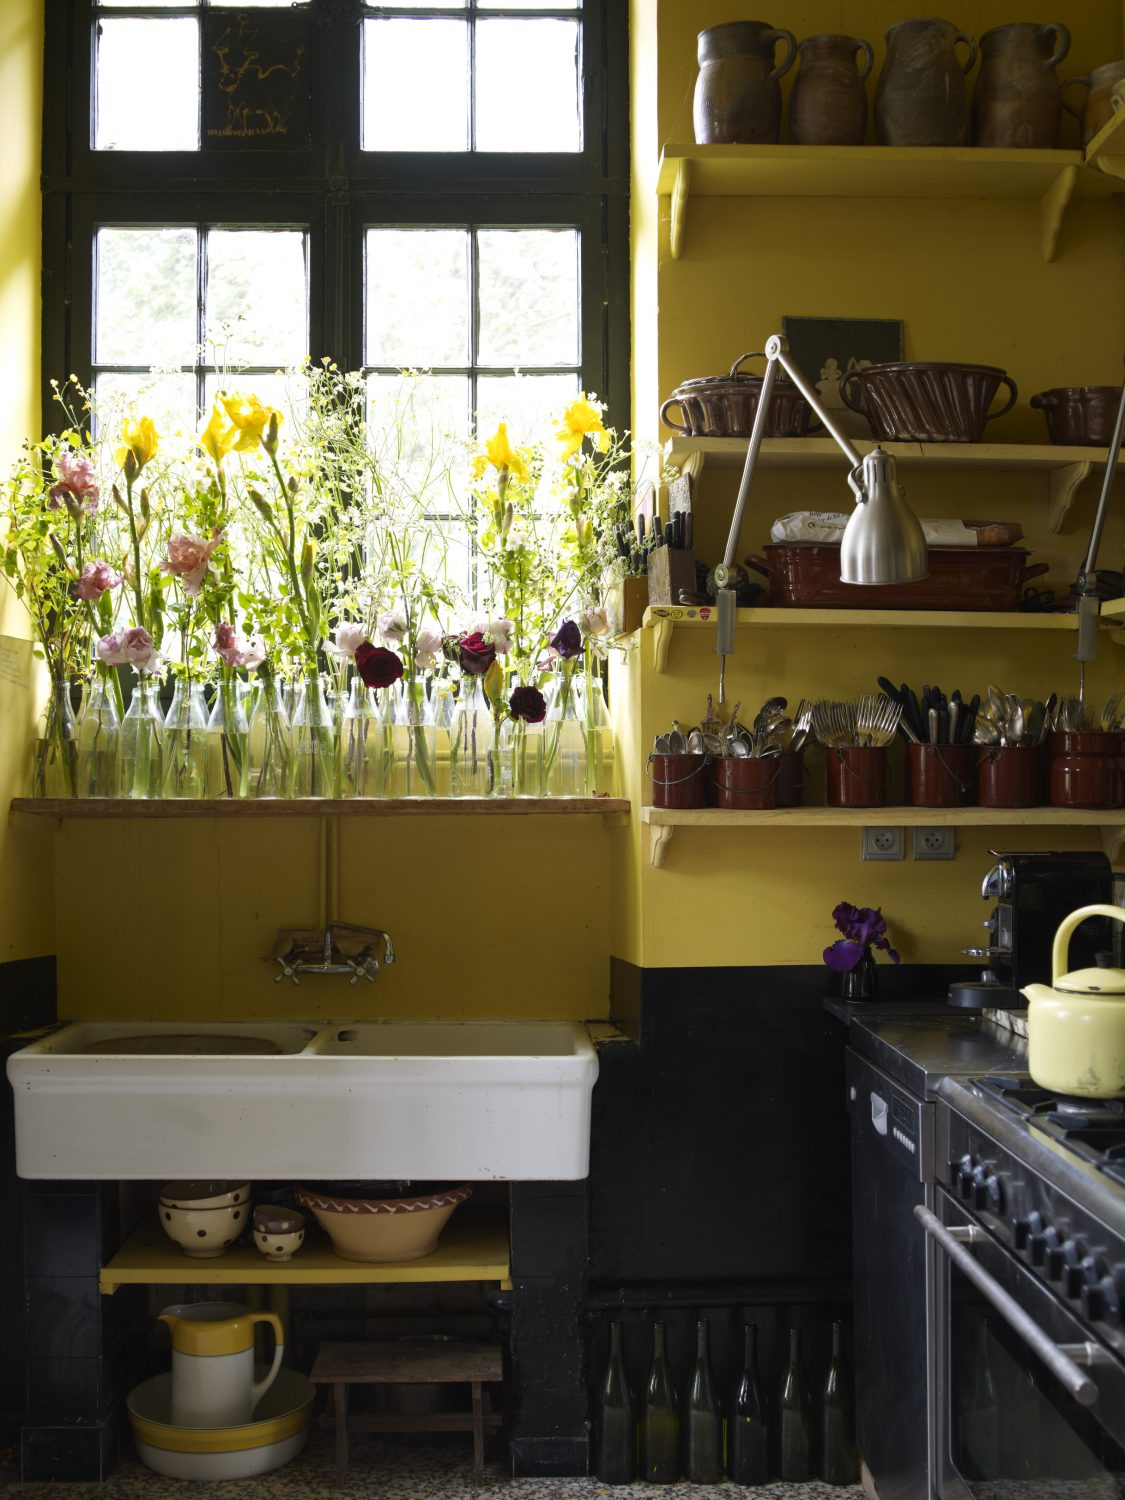 Country Kitchen: In the home of artist Claire Basler, flowers are in abundance. Above the old vintage butler's sink, blooms line up in re-employed grocery bottles. In brown enamel containers, she's stacked her vintage silverware, found at market places, while a lemon yellow teapot resides on the hob. Claire shows off twists of must-have modernity, like the coffee machine and an industrial-style light to assist with food preparation.